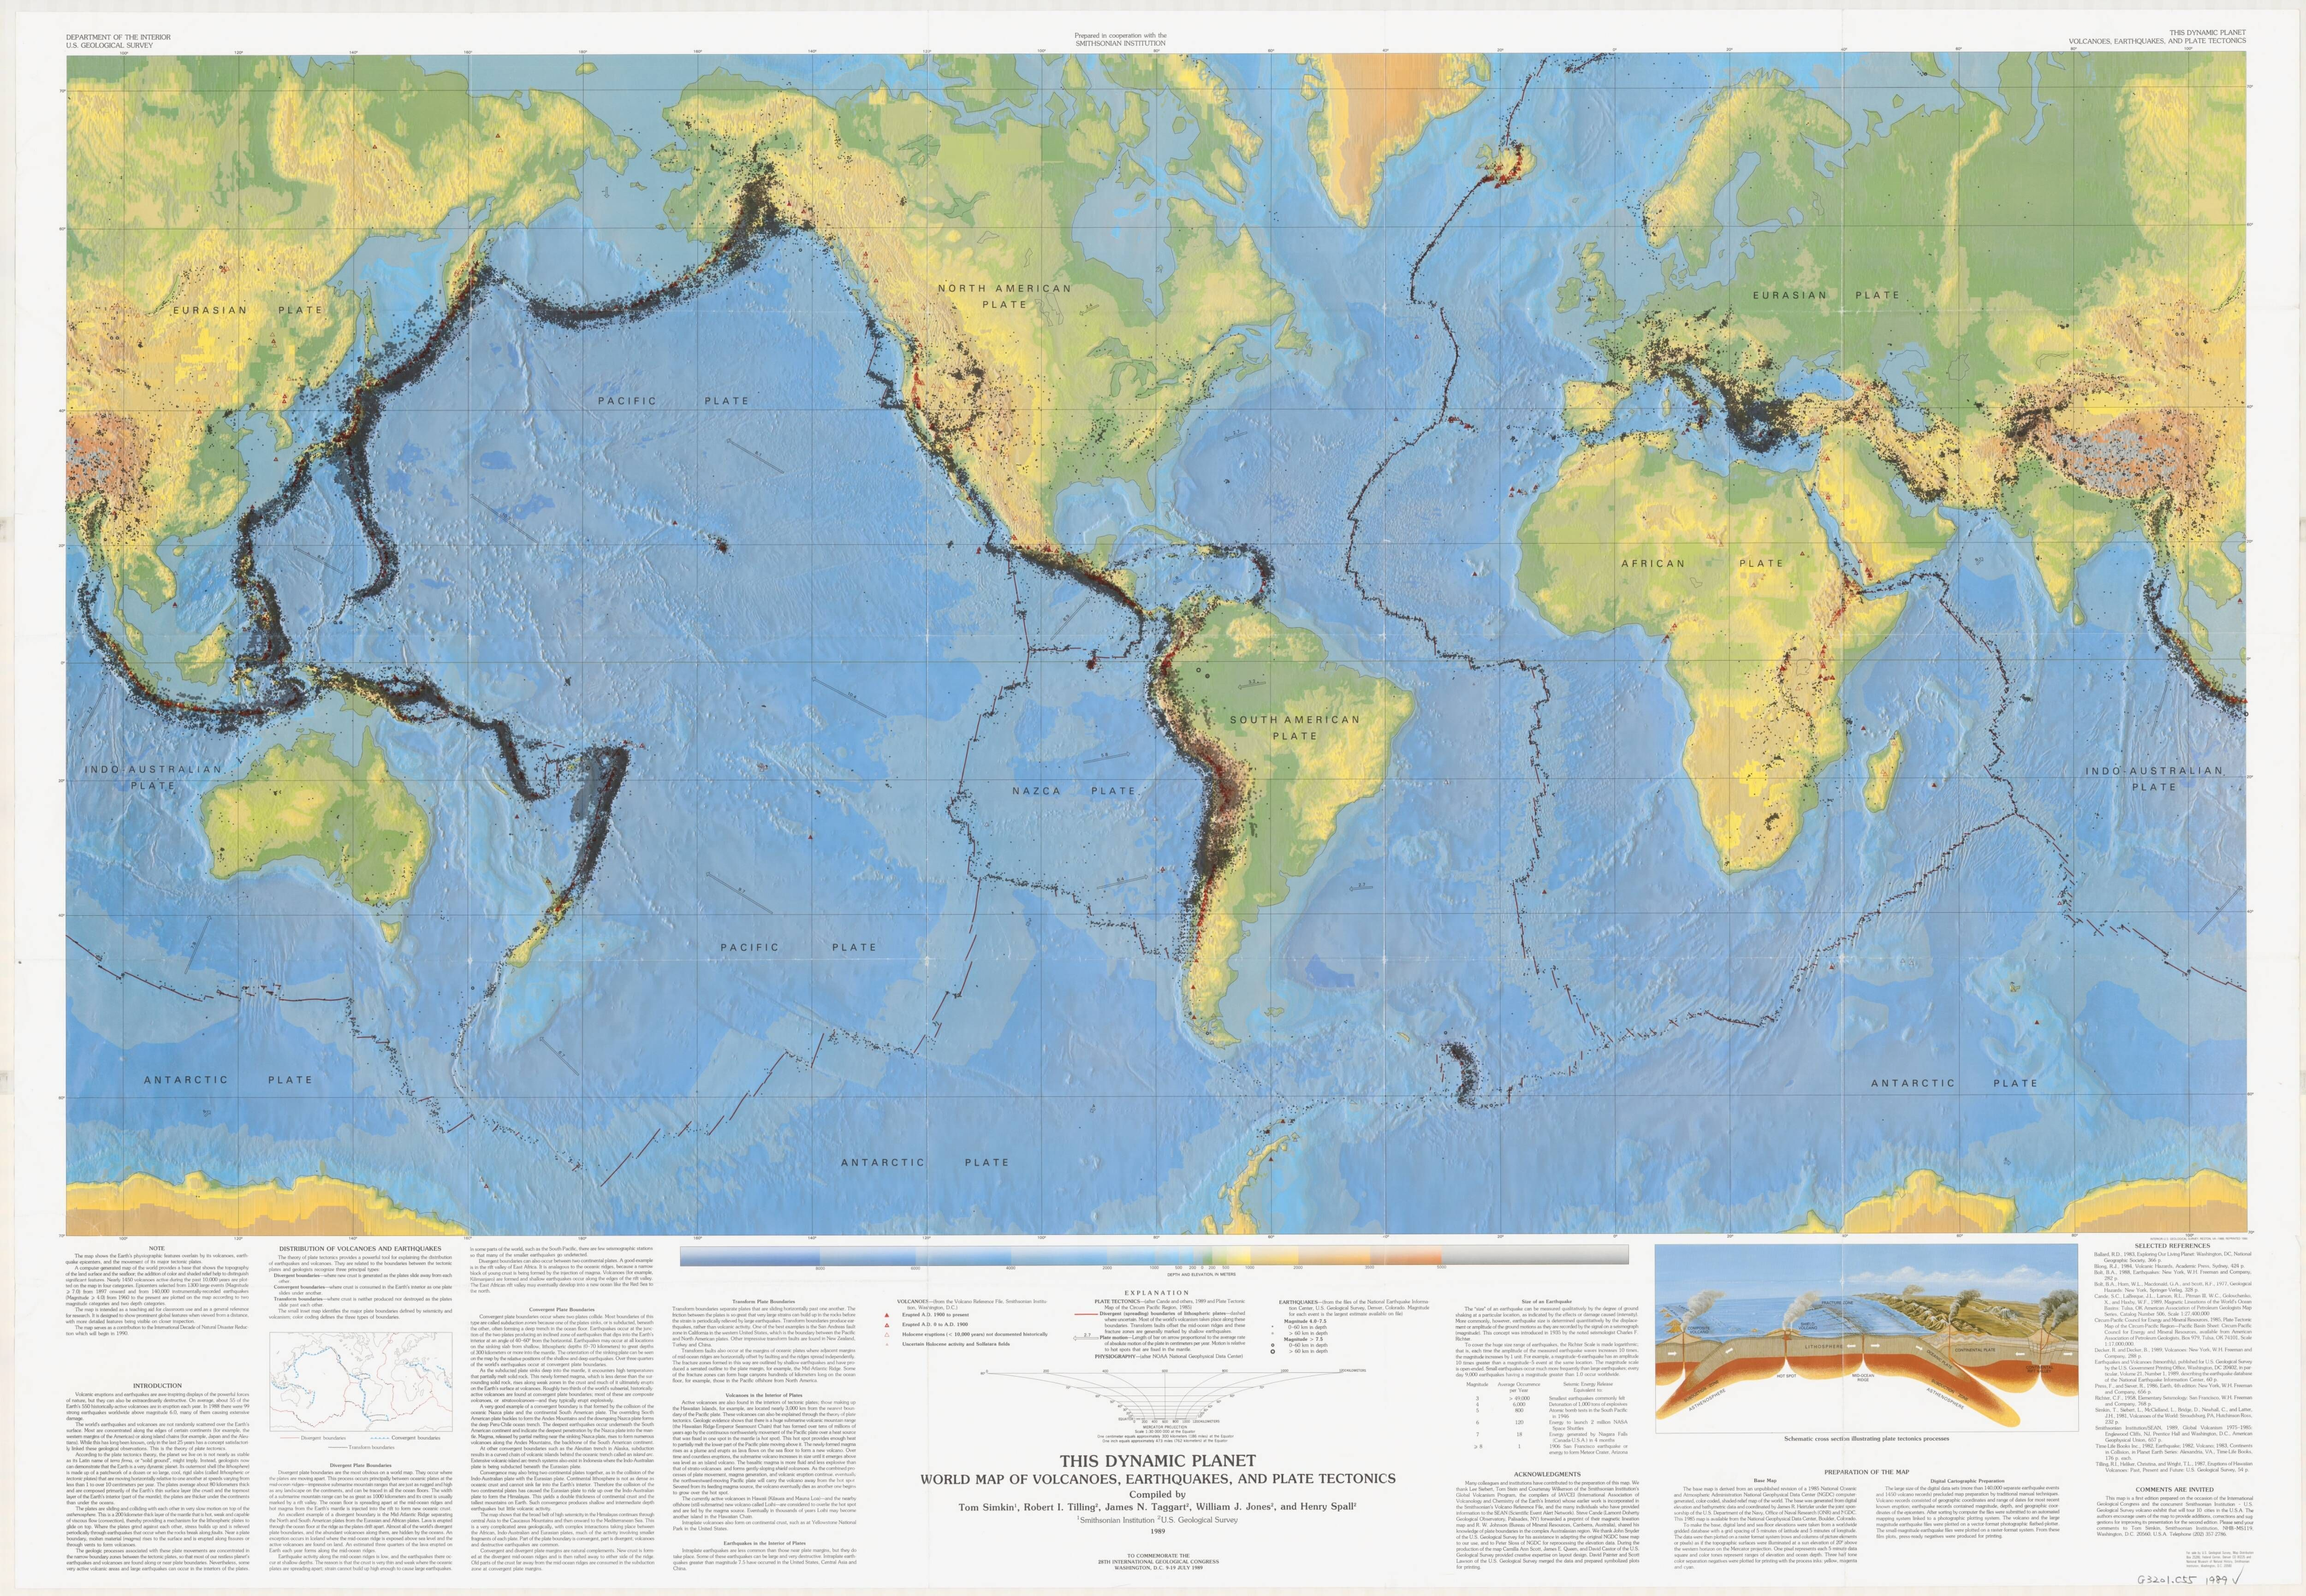 This Dynamic Planet World Map Of Volcanoes Earthquakes